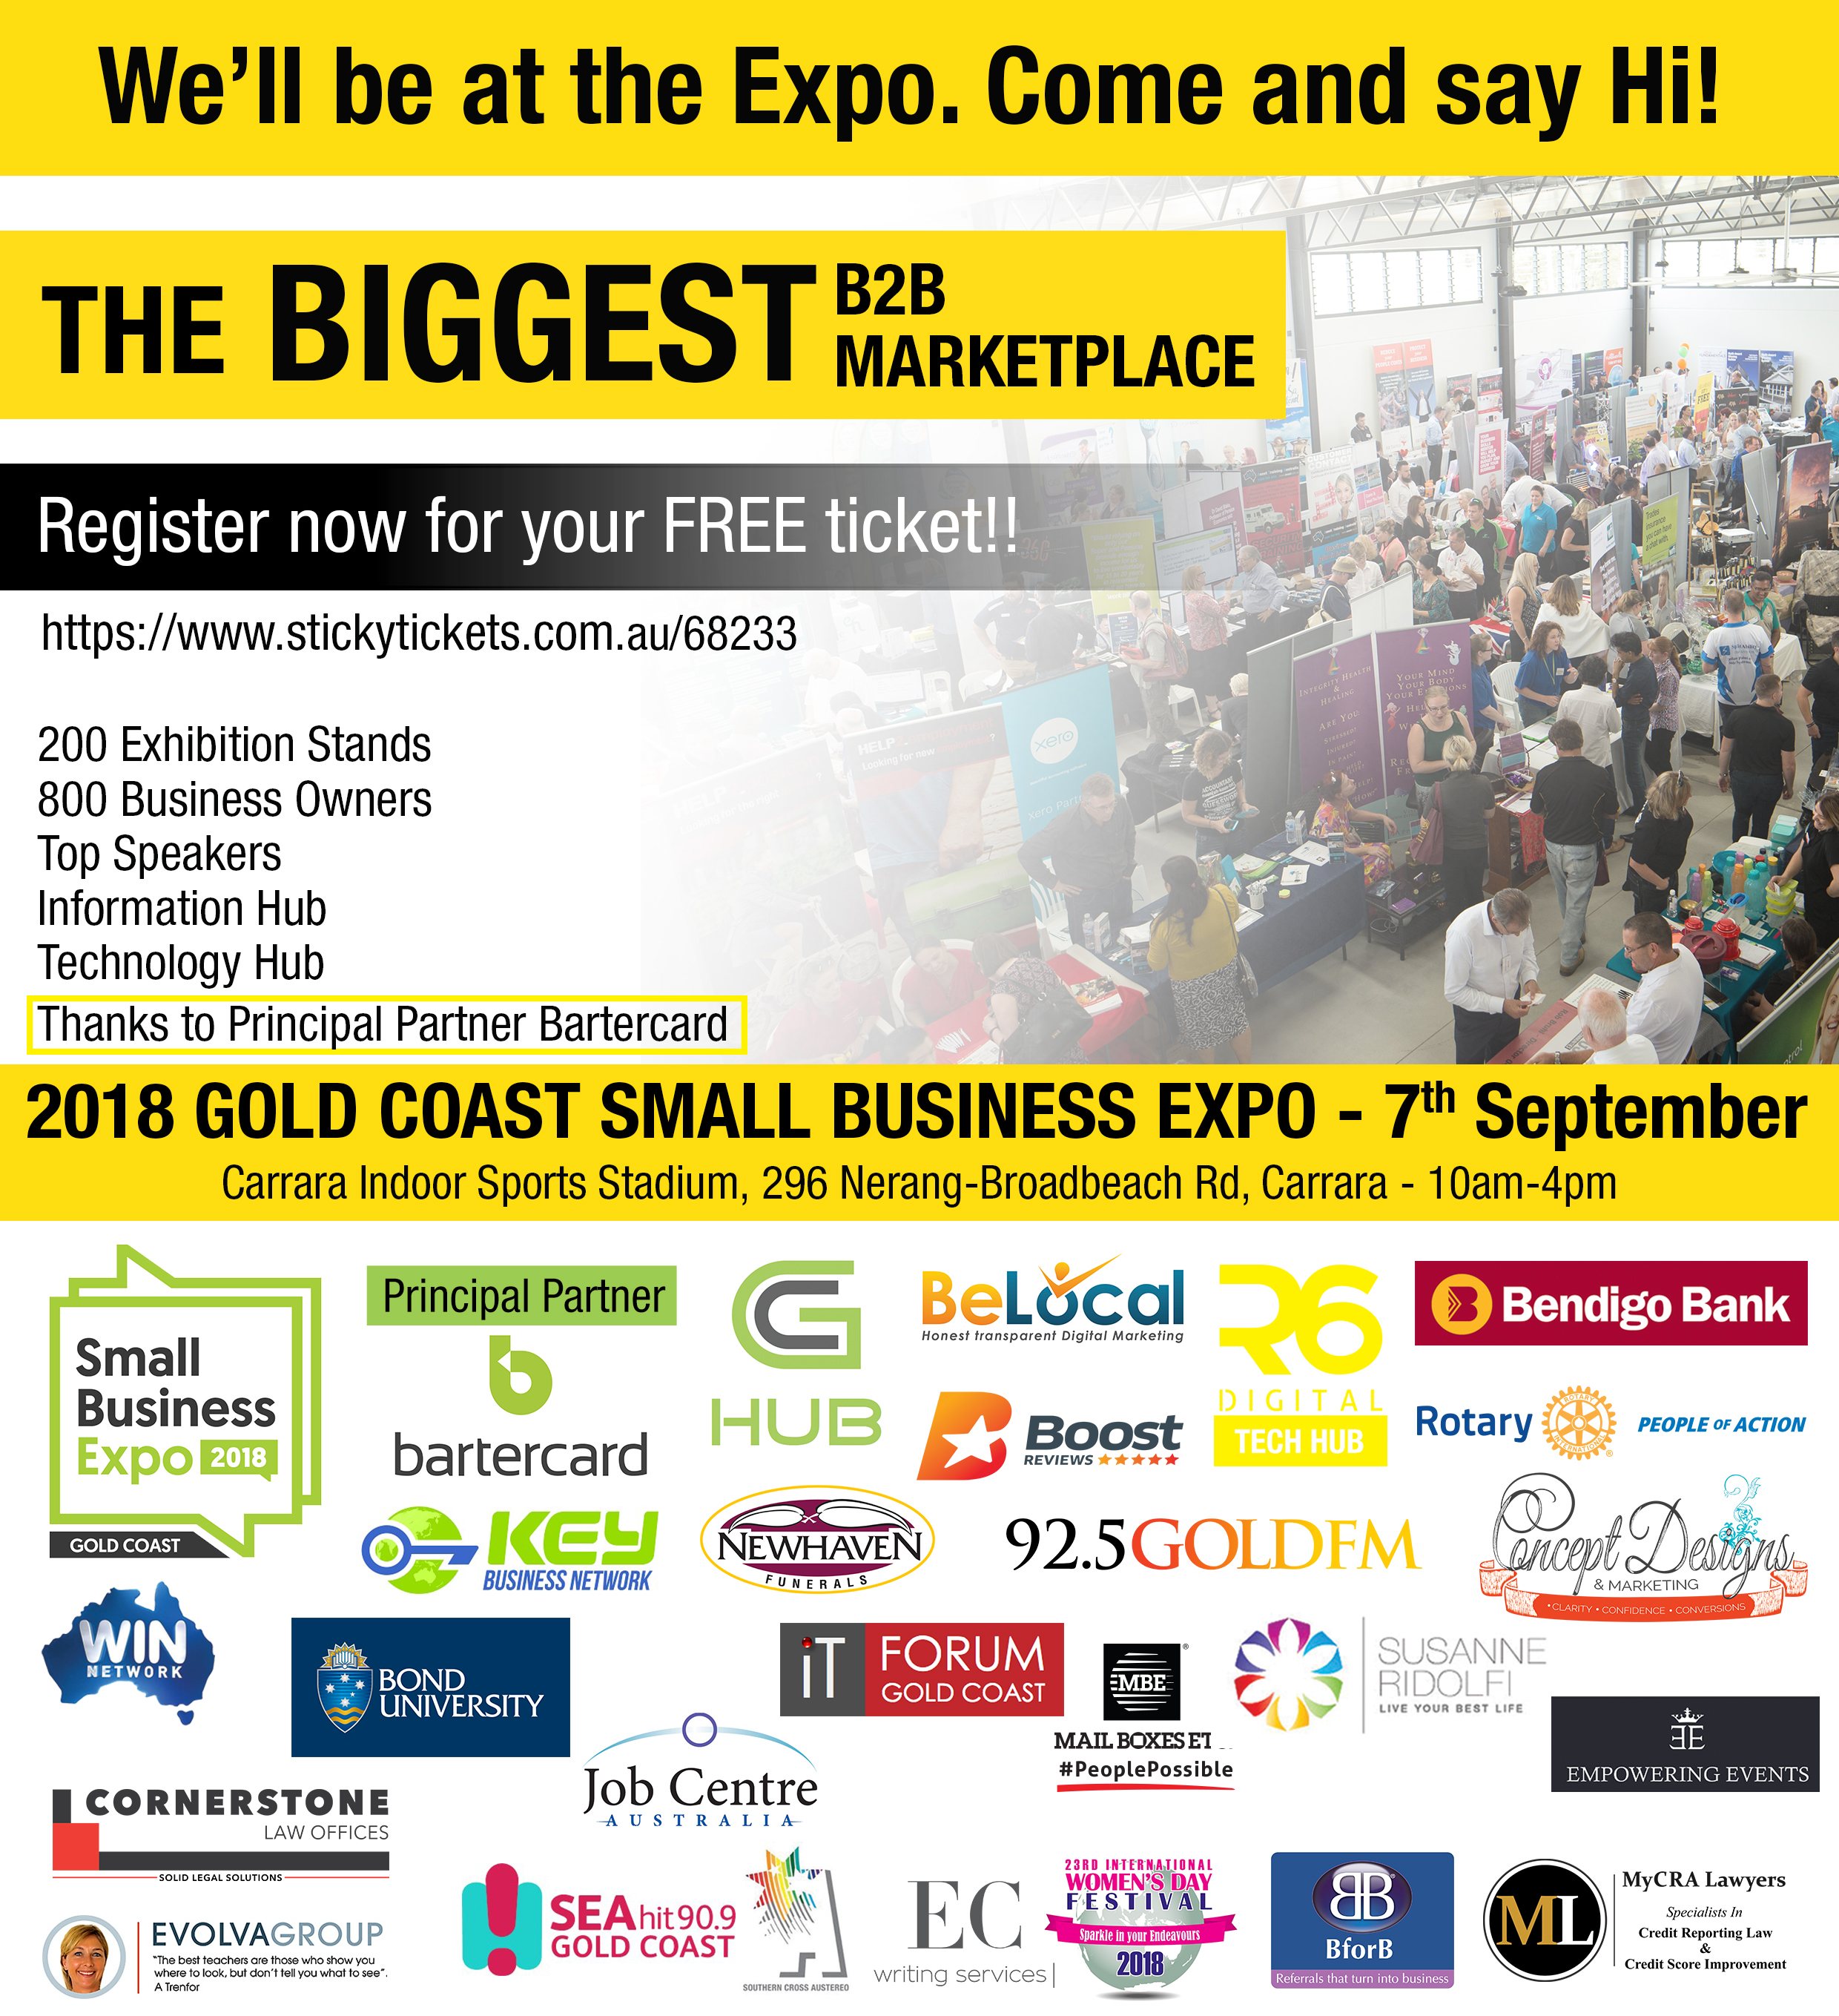 Business Expos | Brisbane | Gold Coast | Small Business Expos | We'll Be There V2.0